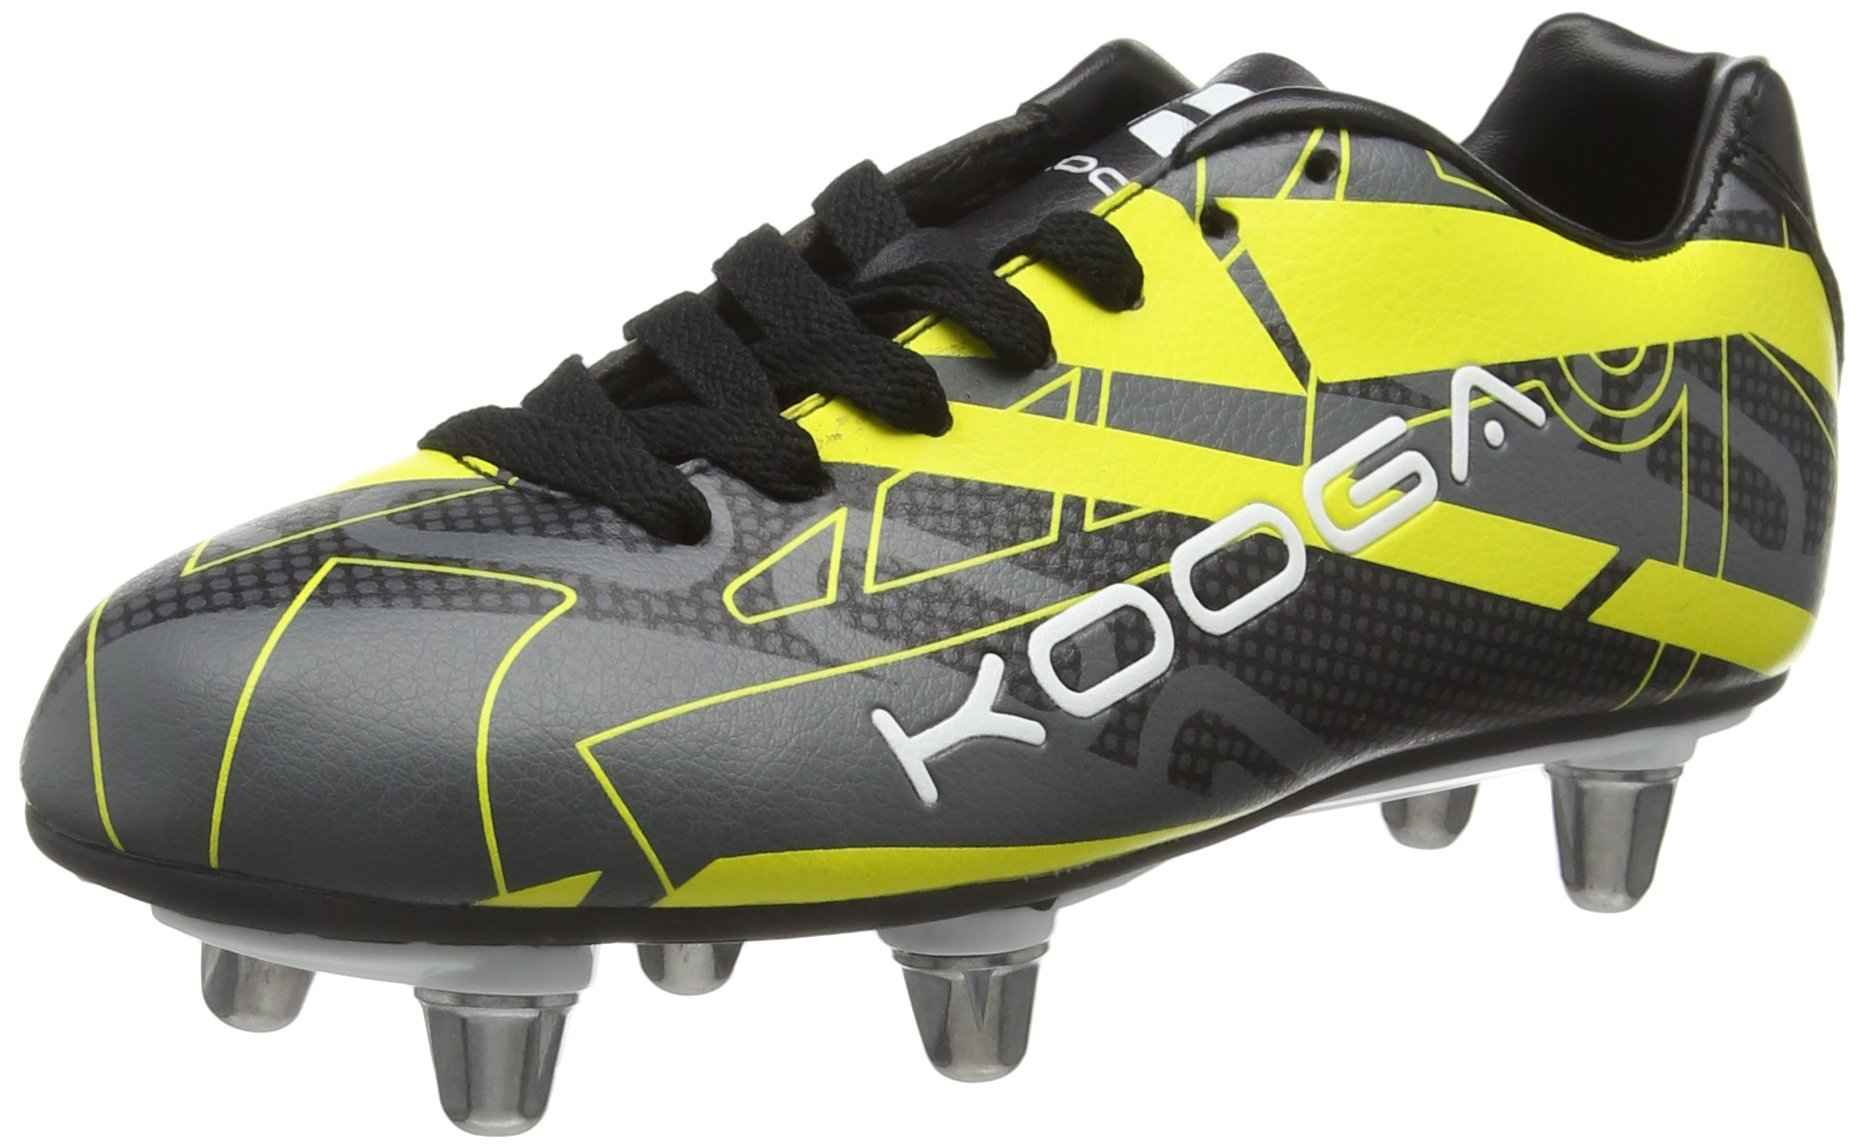 KooGa 2016 Evade Rugby Boots - Junior - Black/Yellow - UK 4